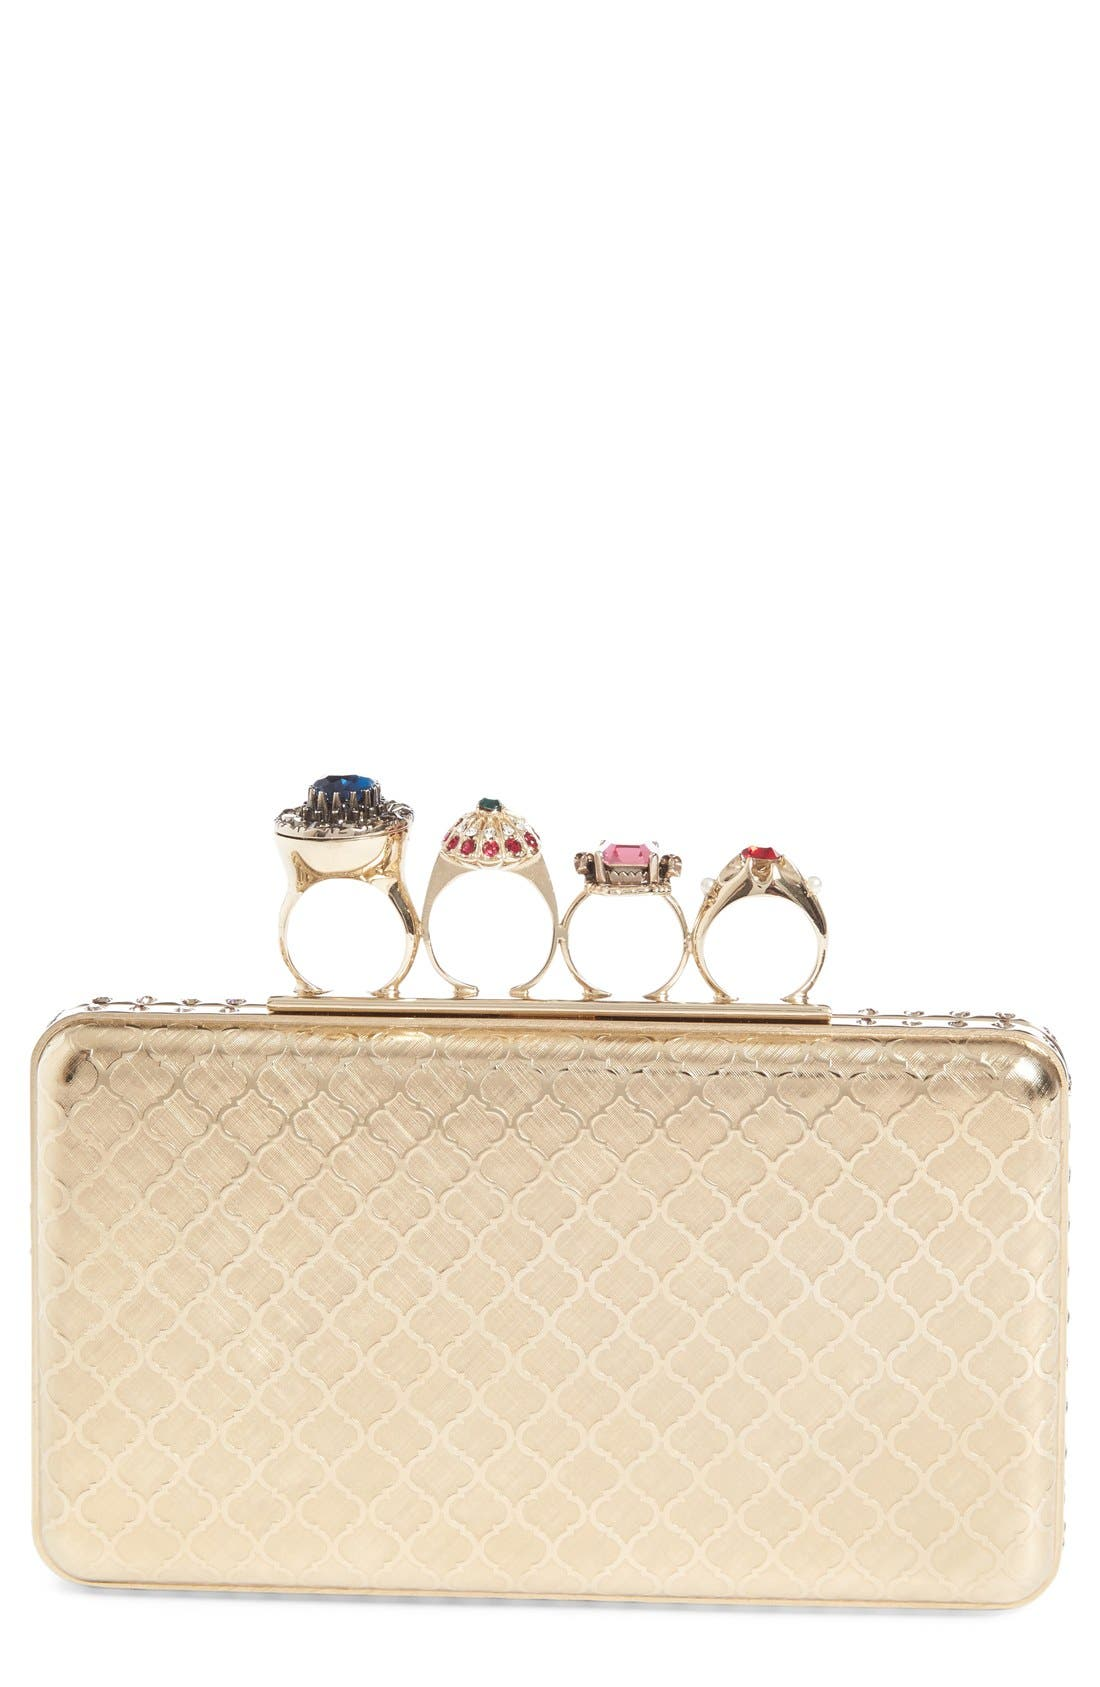 Alternate Image 1 Selected - Alexander McQueen Embellished Knuckle Clasp Box Clutch